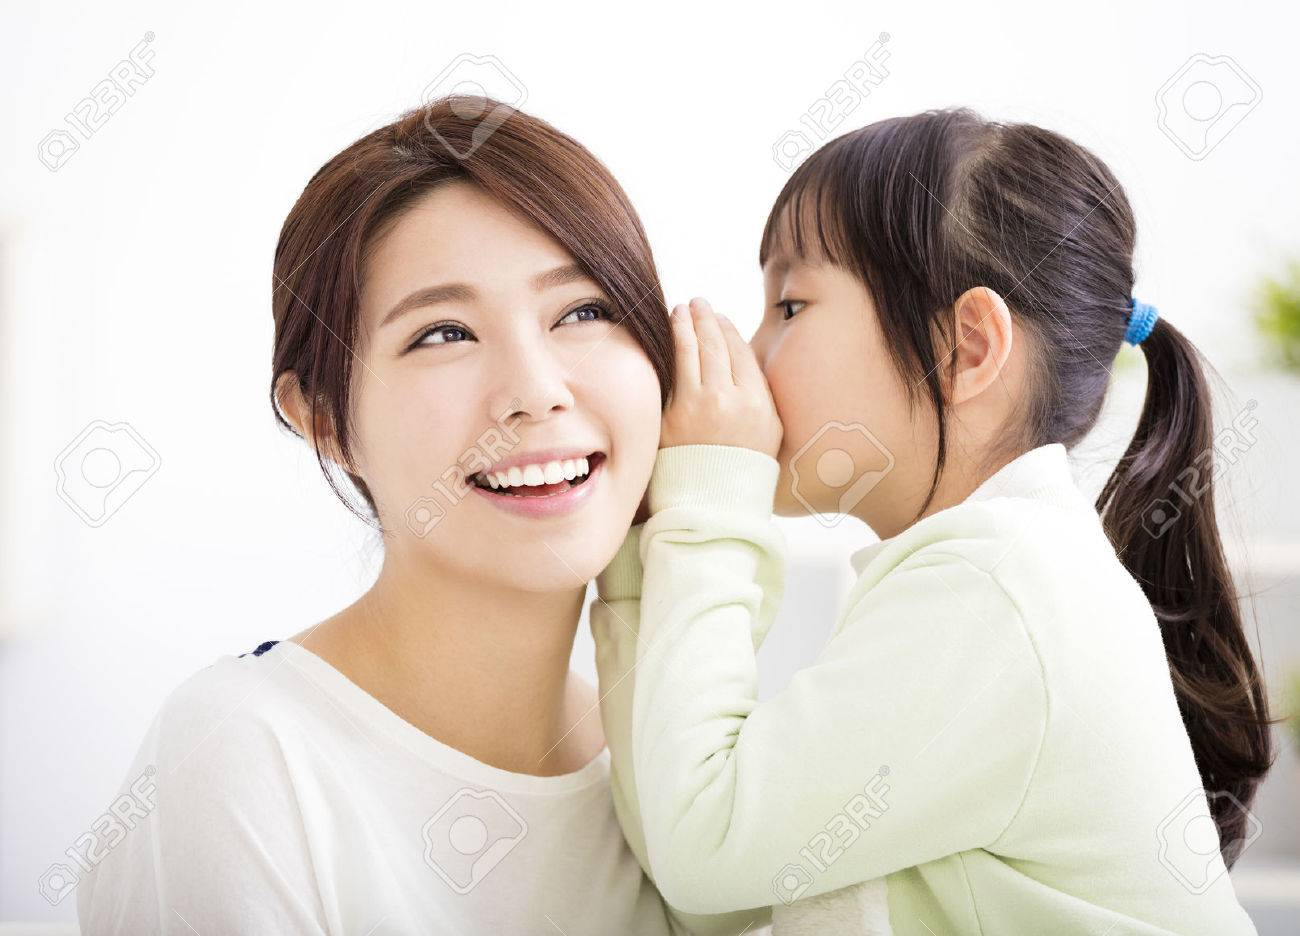 mother and daughter whispering gossip - 52256008